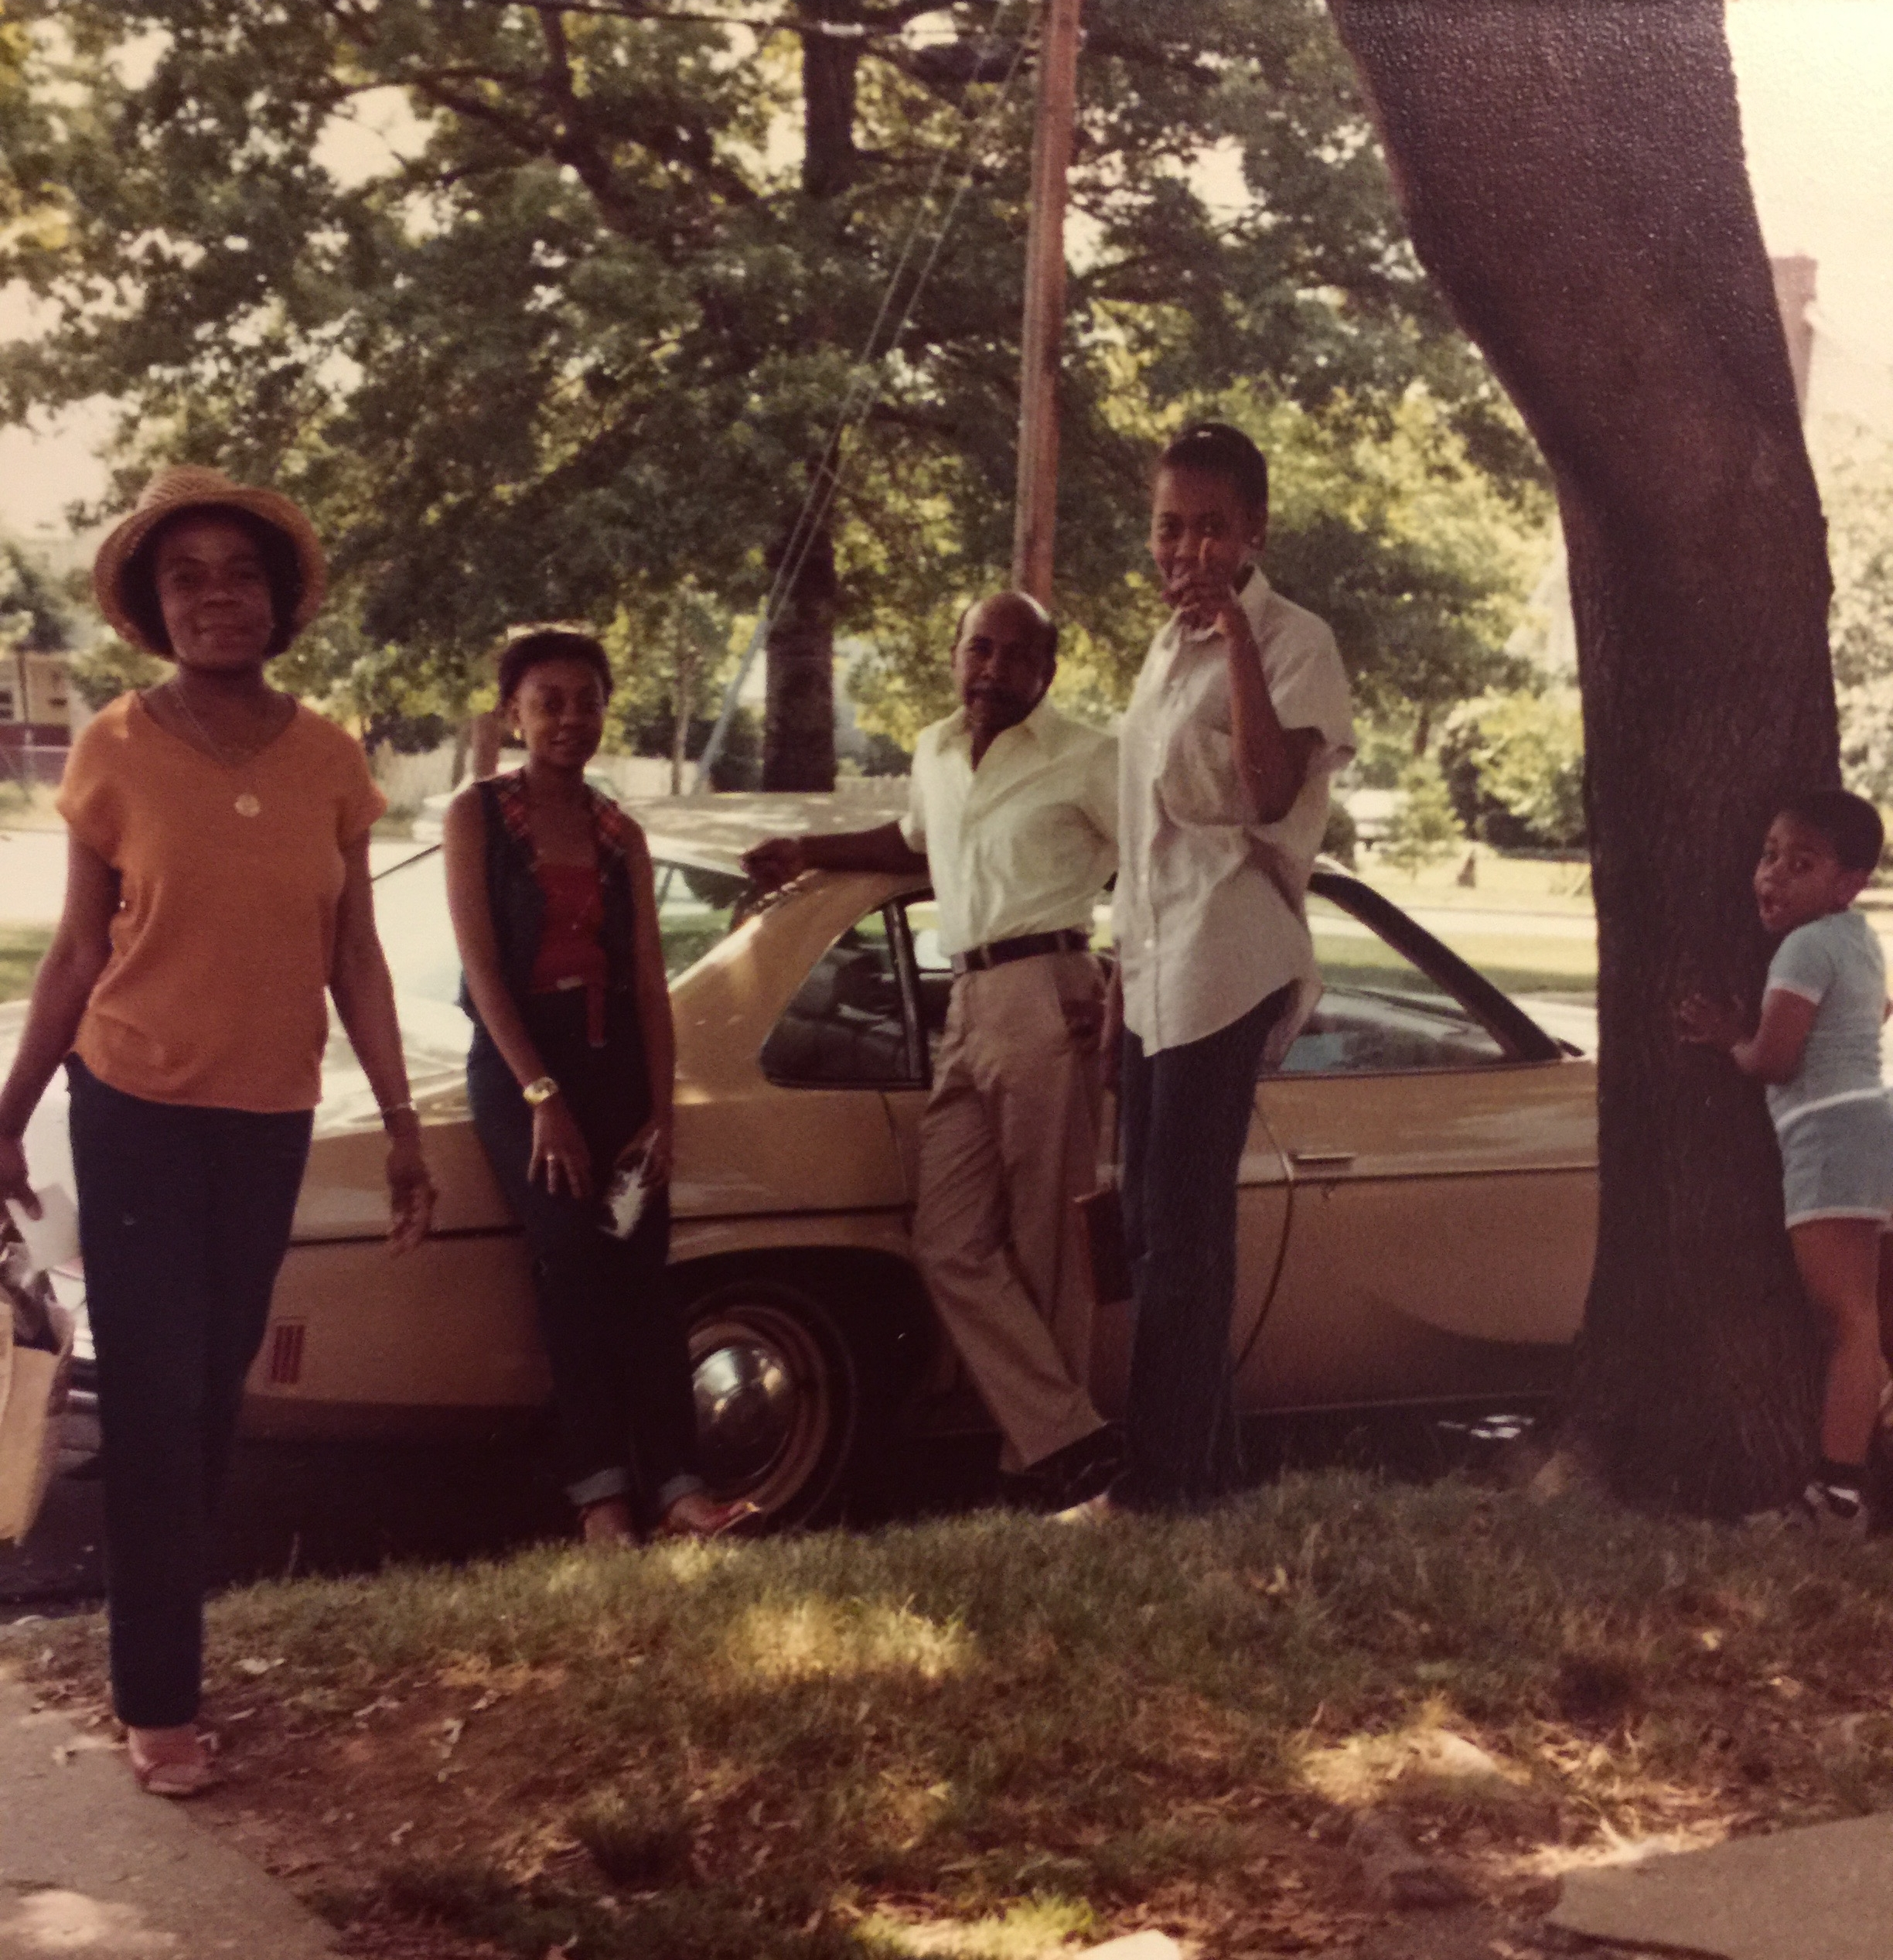 Victoria's family in Brooklyn in probably the late 1970s. Her mom (pointing at the camera), her grandparents, her aunt, and her uncle.